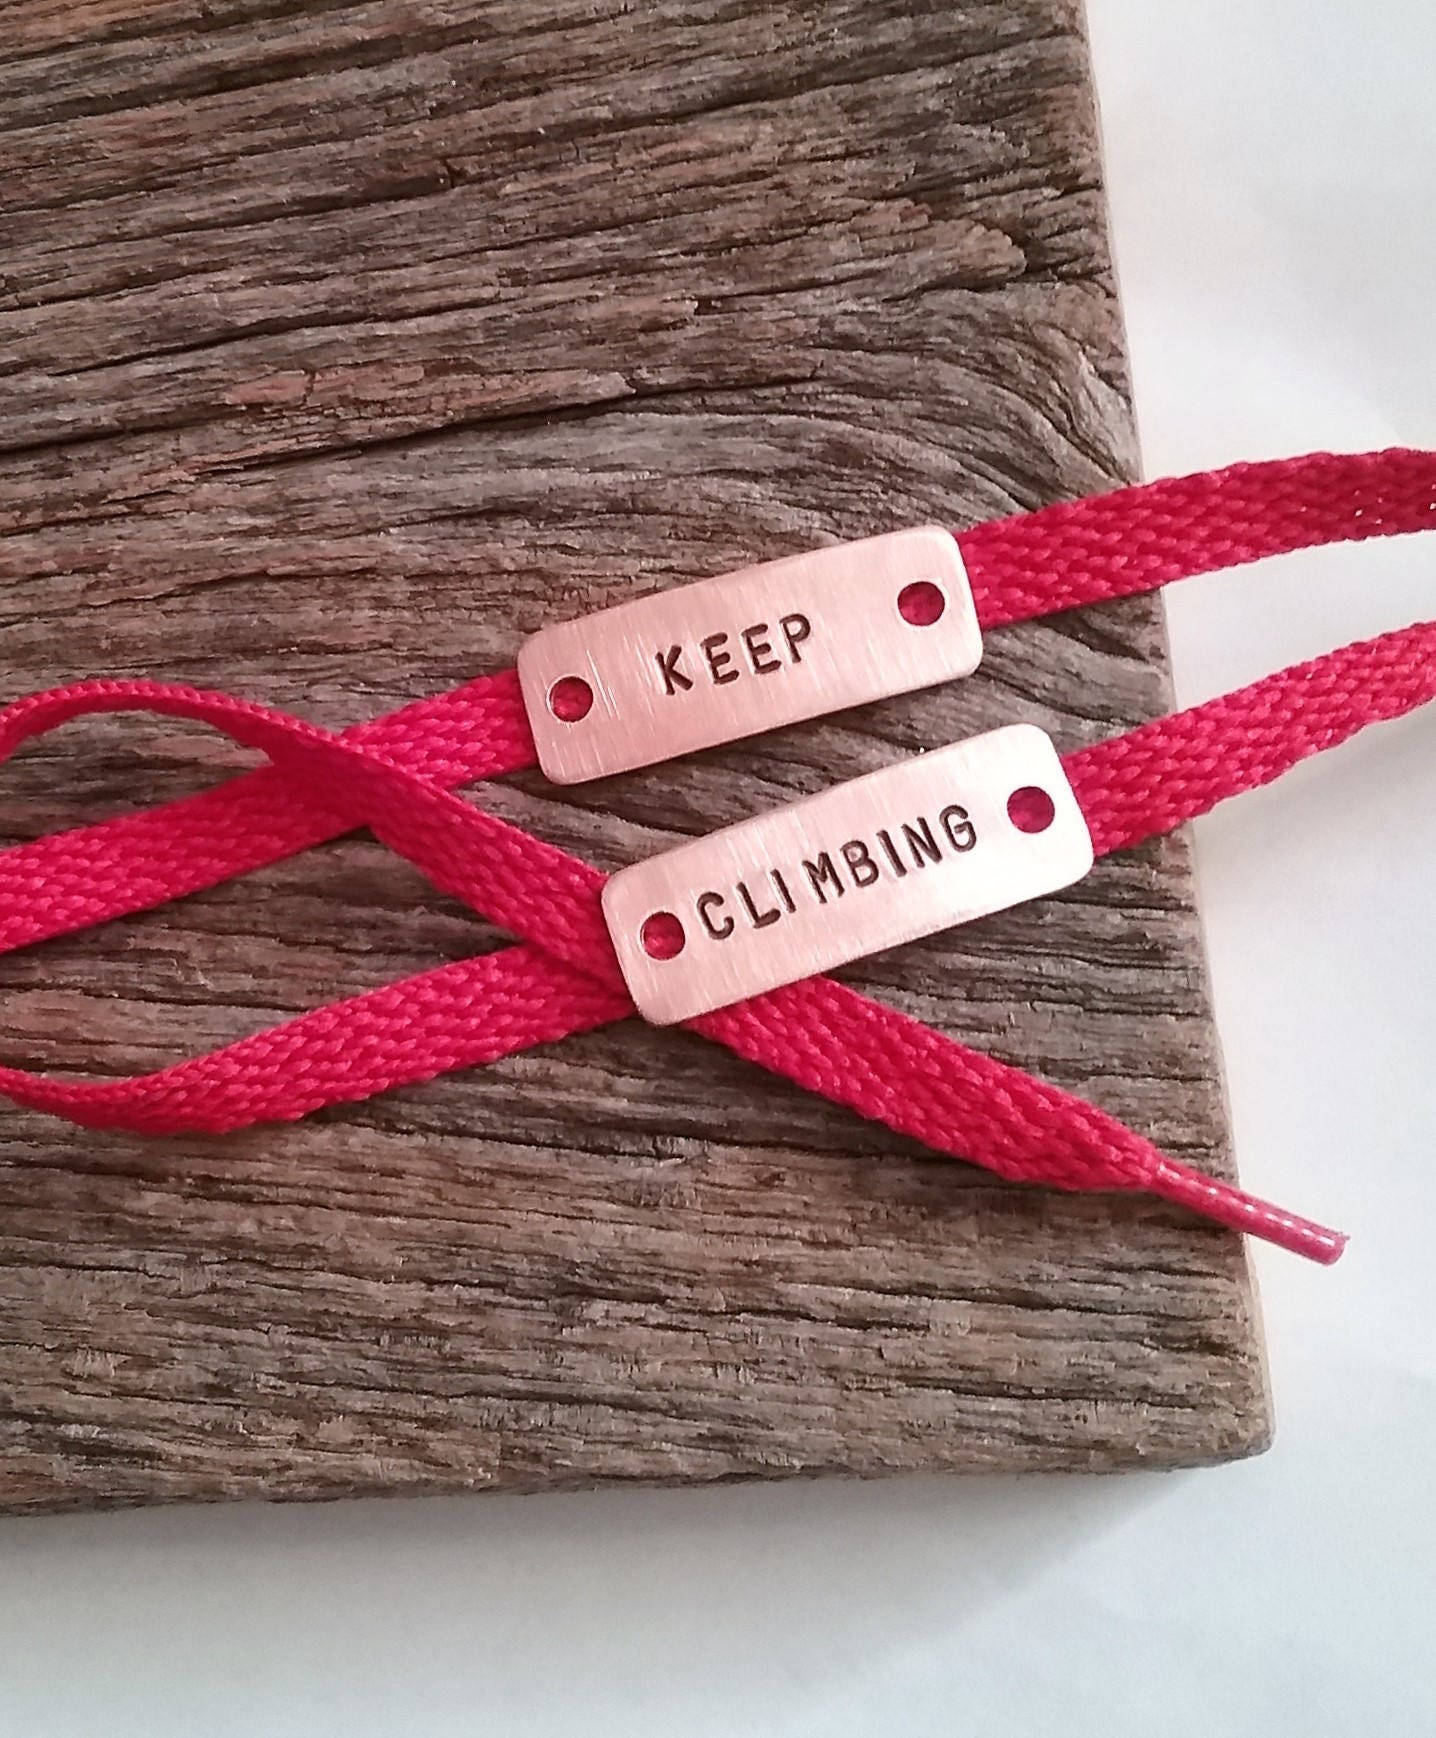 Keep Climbing Shoe Tags Unisex Gifts Under 20 Gift For Climber